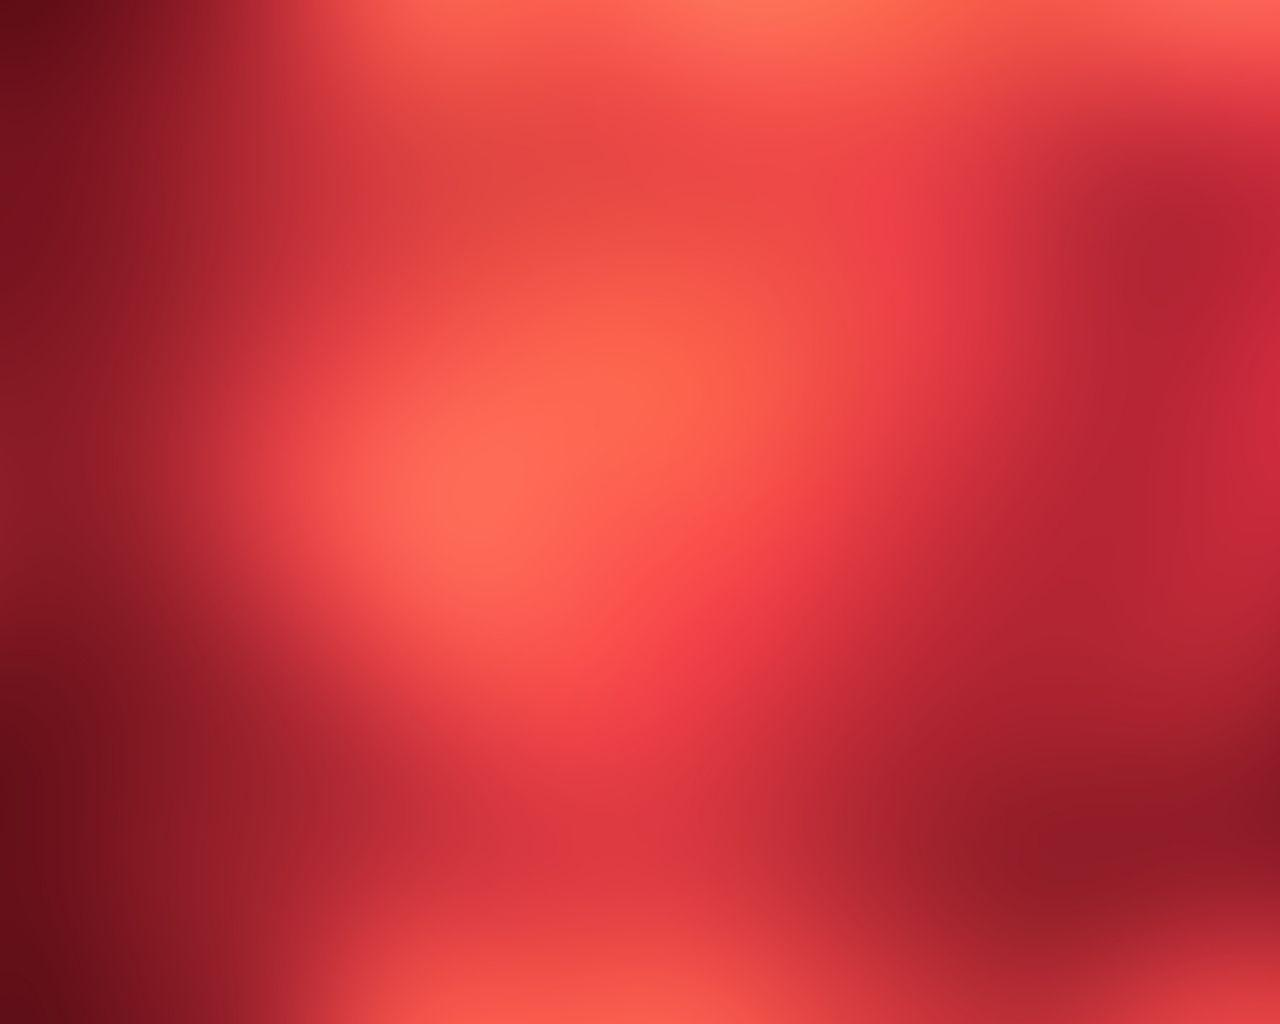 Red And Gold Wallpapers - Wallpaper Cave